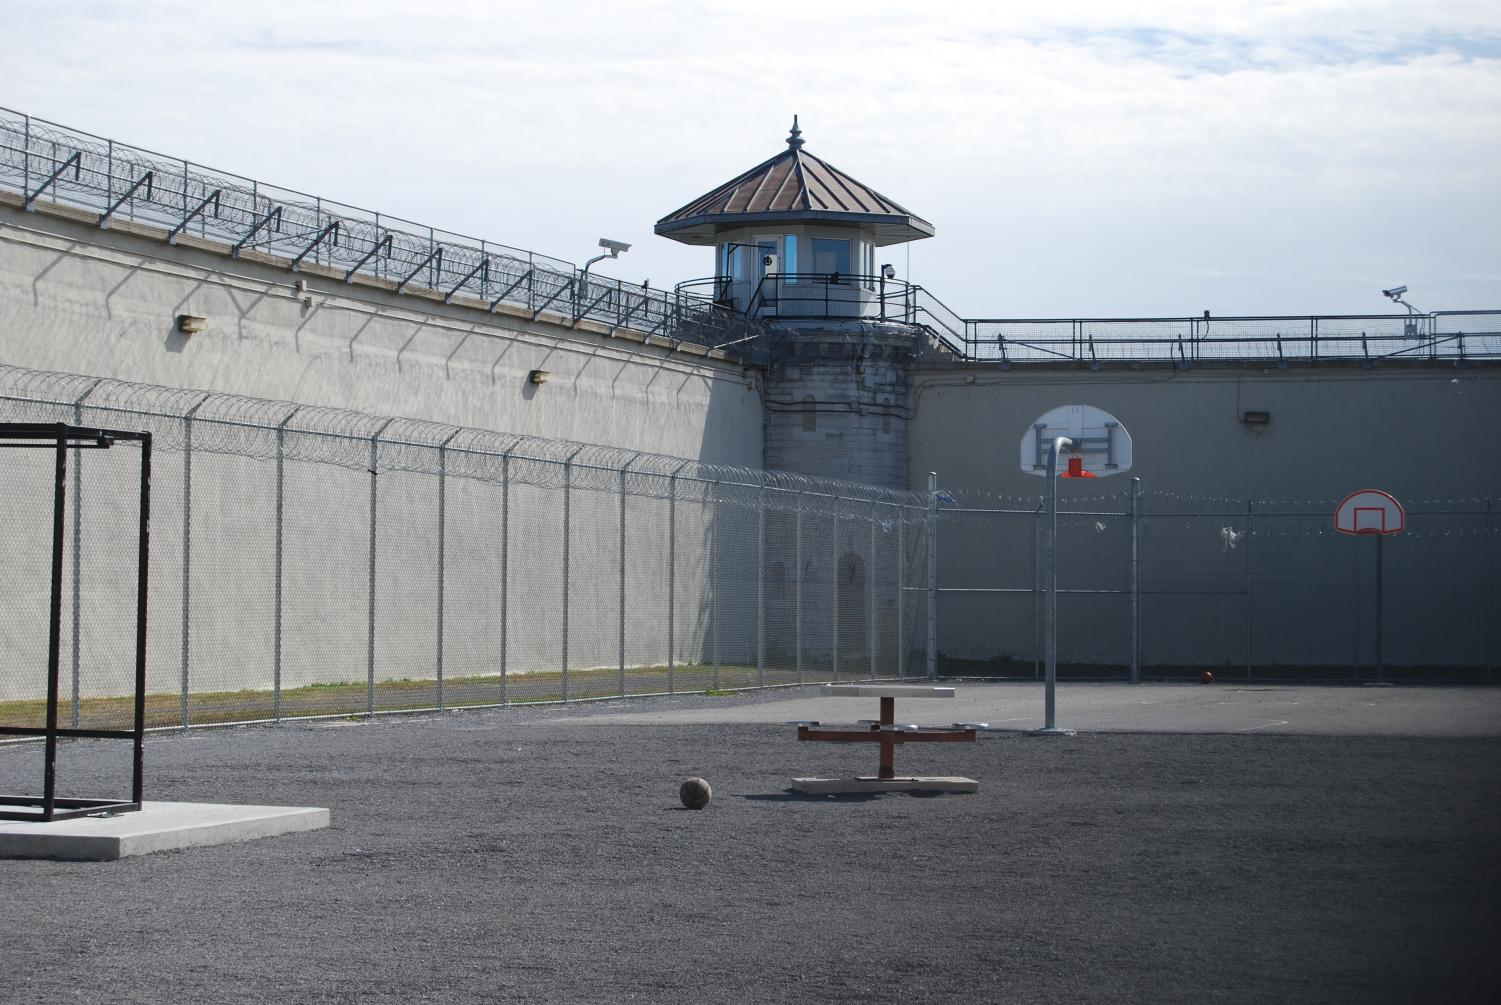 AACC faculty teach business and entrepreneurship classes at Jessup Correctional Insti-tution, similar to the prison pictured above.